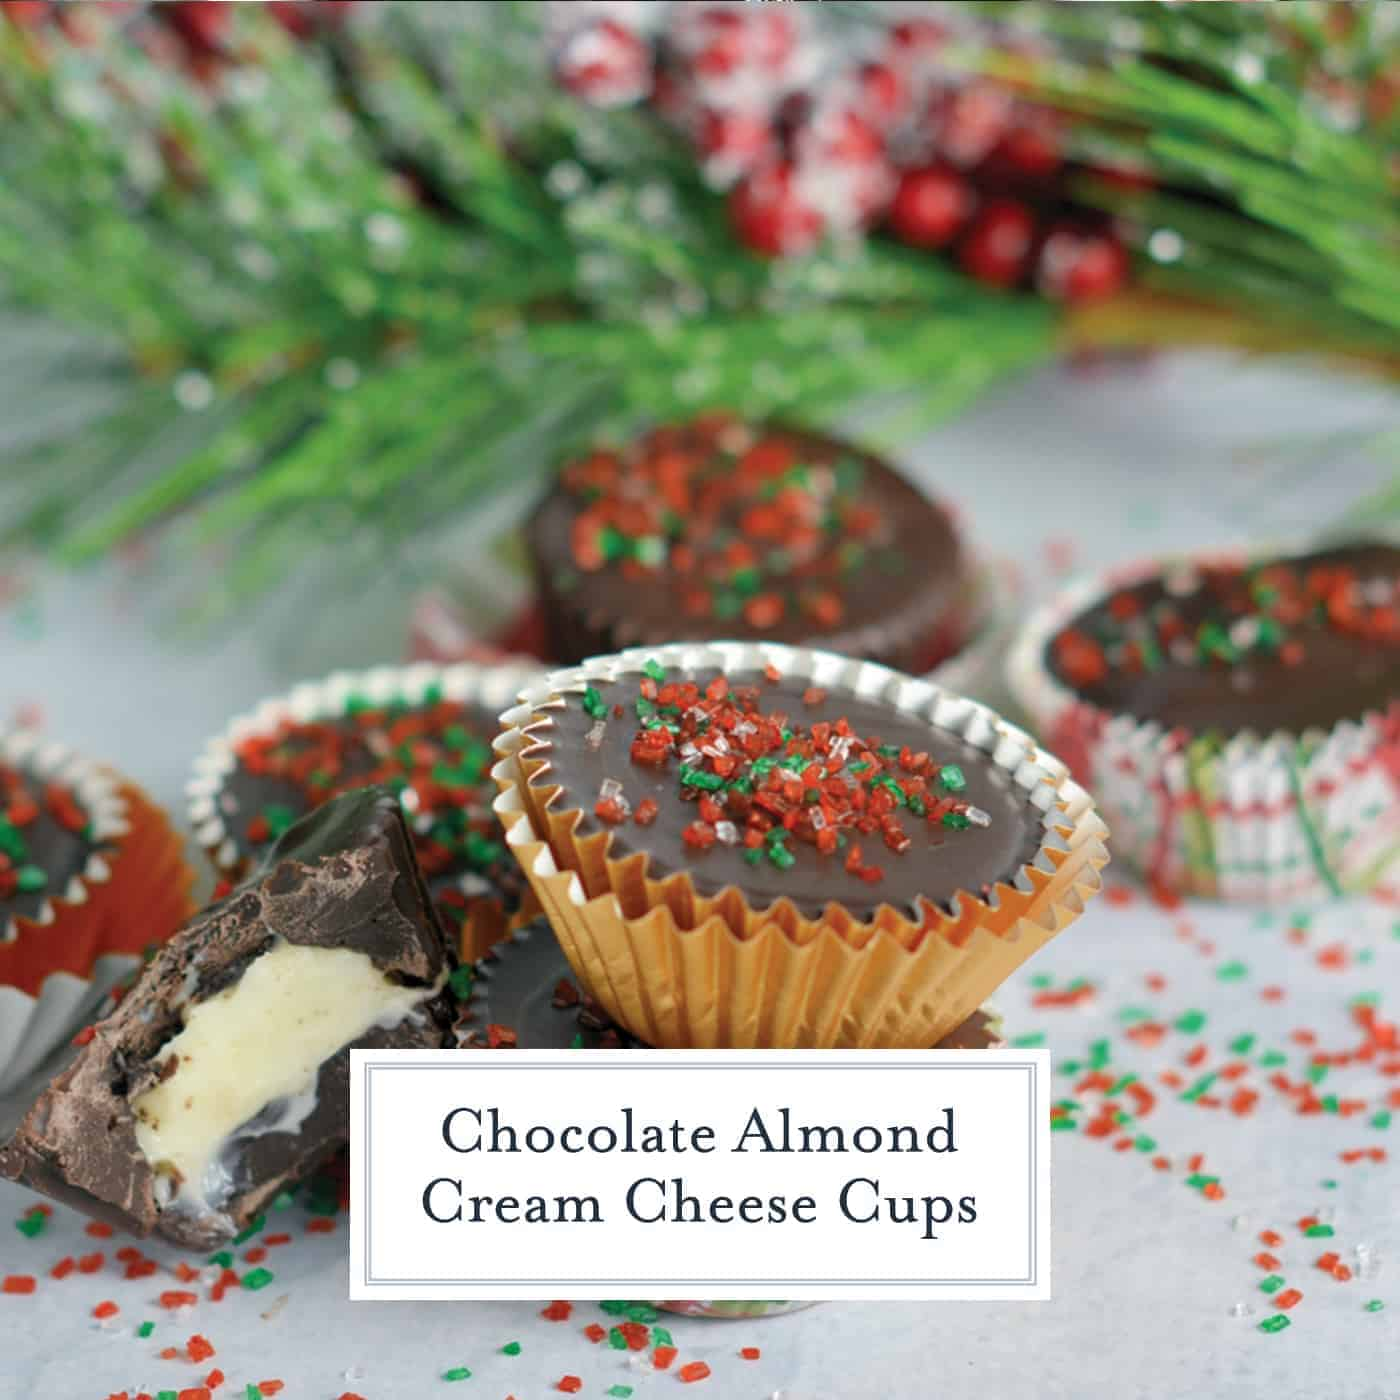 Dark Chocolate Almond Cream Cheese Cups are my secret no-bake dessert weapon. In only 15 minutes and 5 ingredients you will have your new favorite dessert. #nobakedesserts #cheesecakecups www.savoryexperiments.com